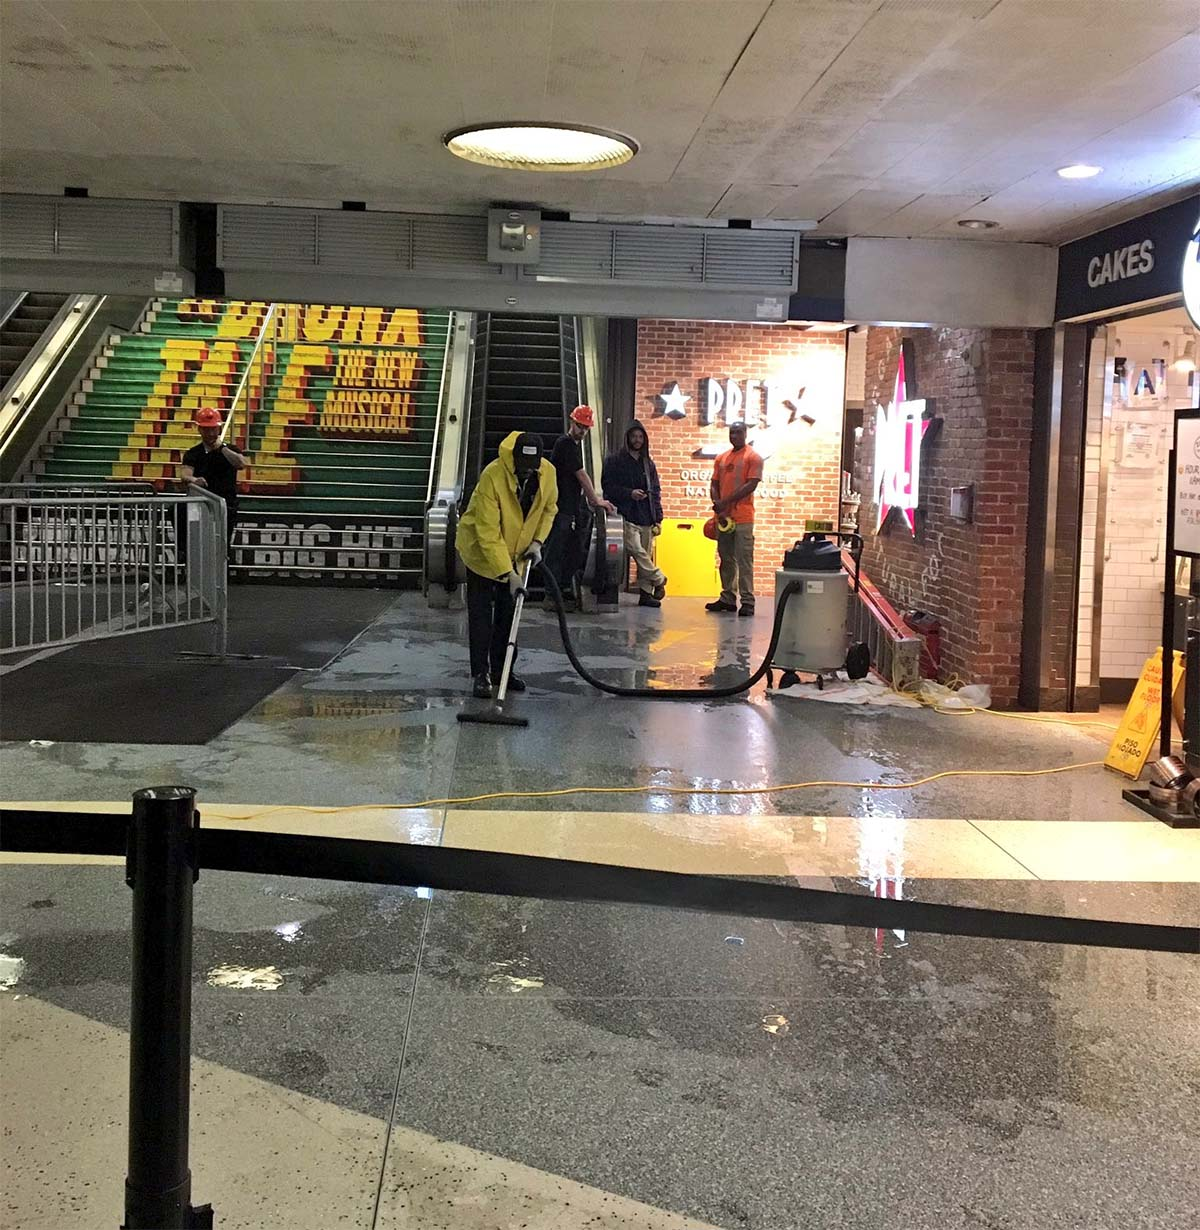 <div class='meta'><div class='origin-logo' data-origin='none'></div><span class='caption-text' data-credit='Photo/@WisdomGirlFilms via Twitter'>Flooding inside Penn Station.</span></div>